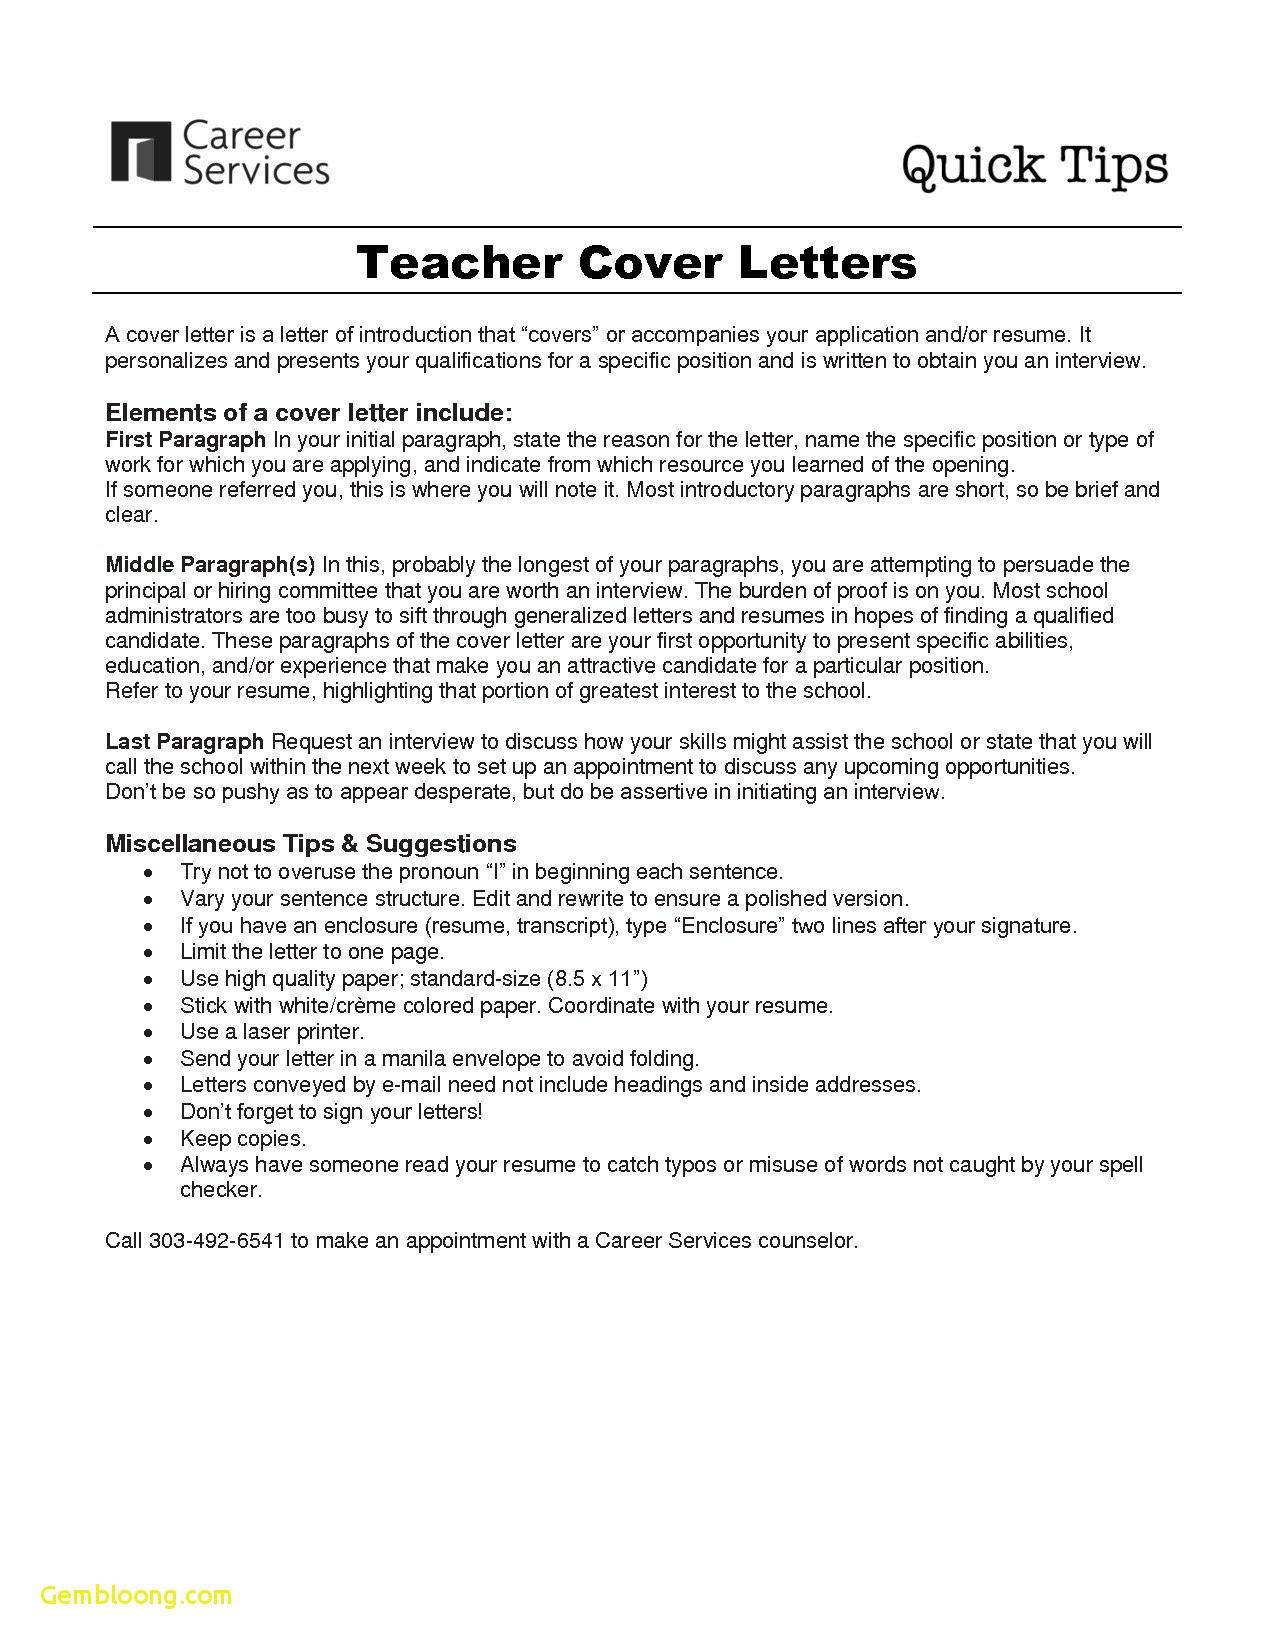 How To Write An Essay Introduction With Sample Intros Fabulous With Leed Letter Template